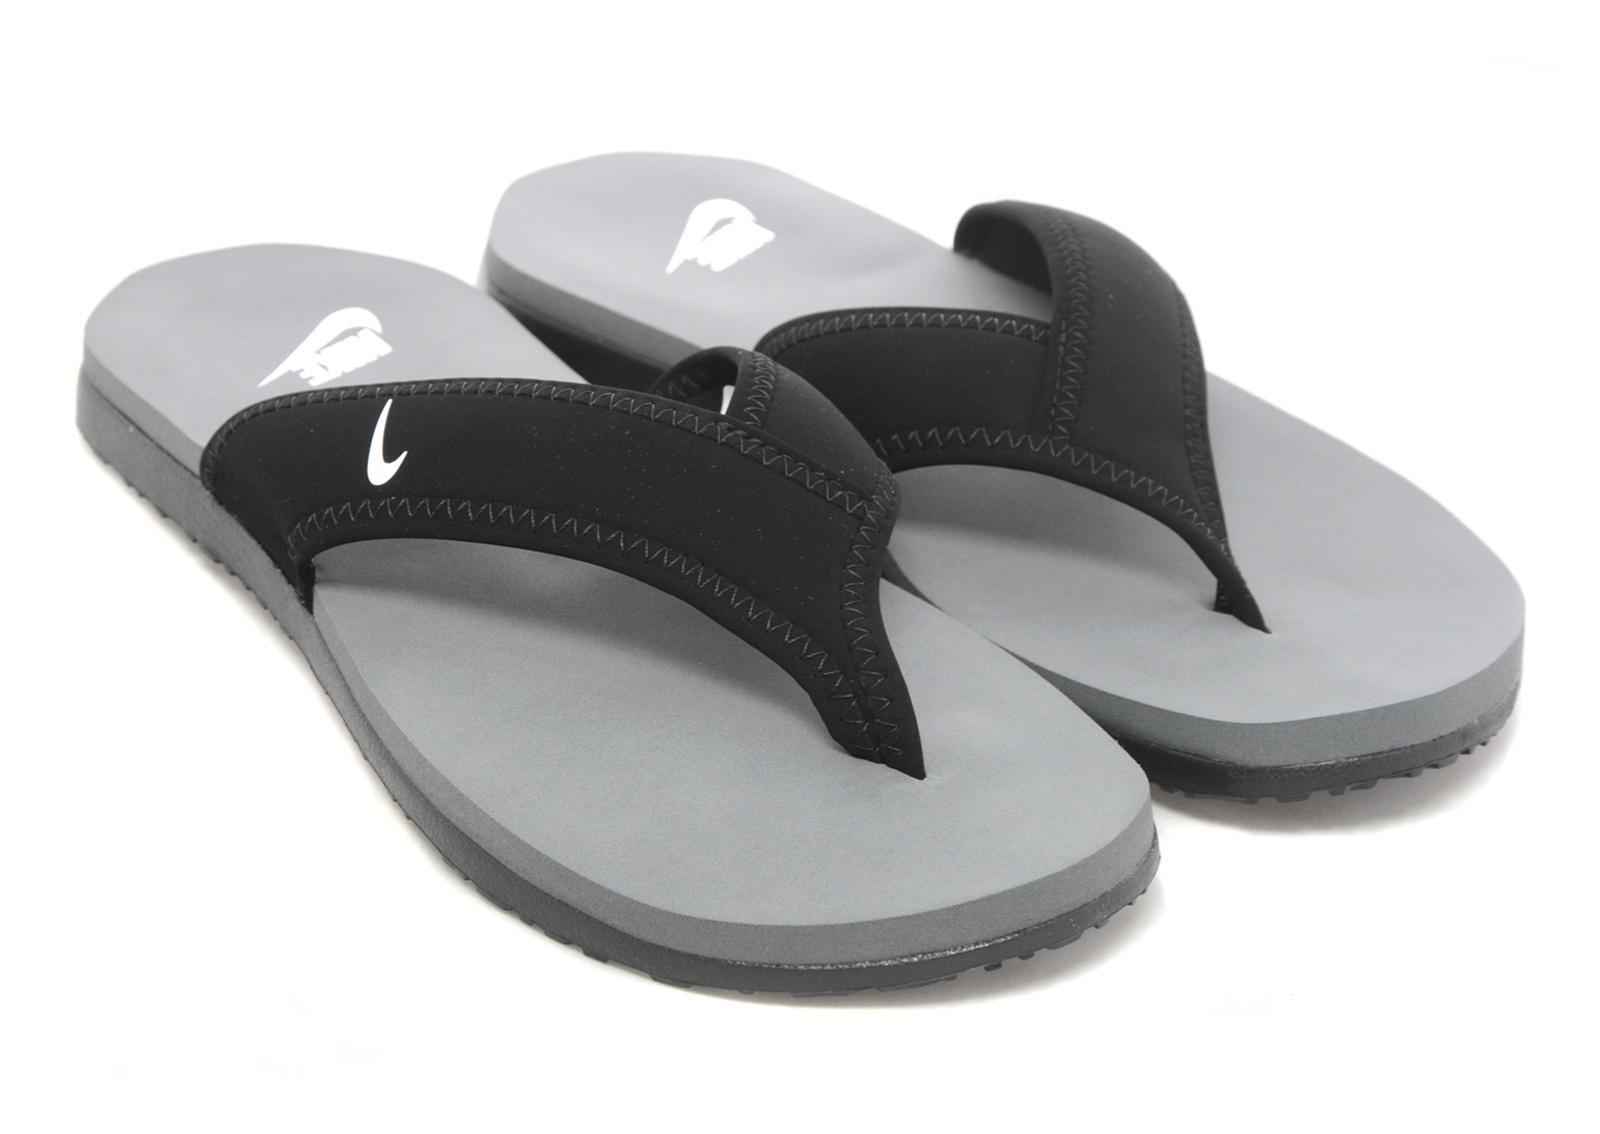 Nike Celso Thong Sandals In Black For Men - Lyst-3335